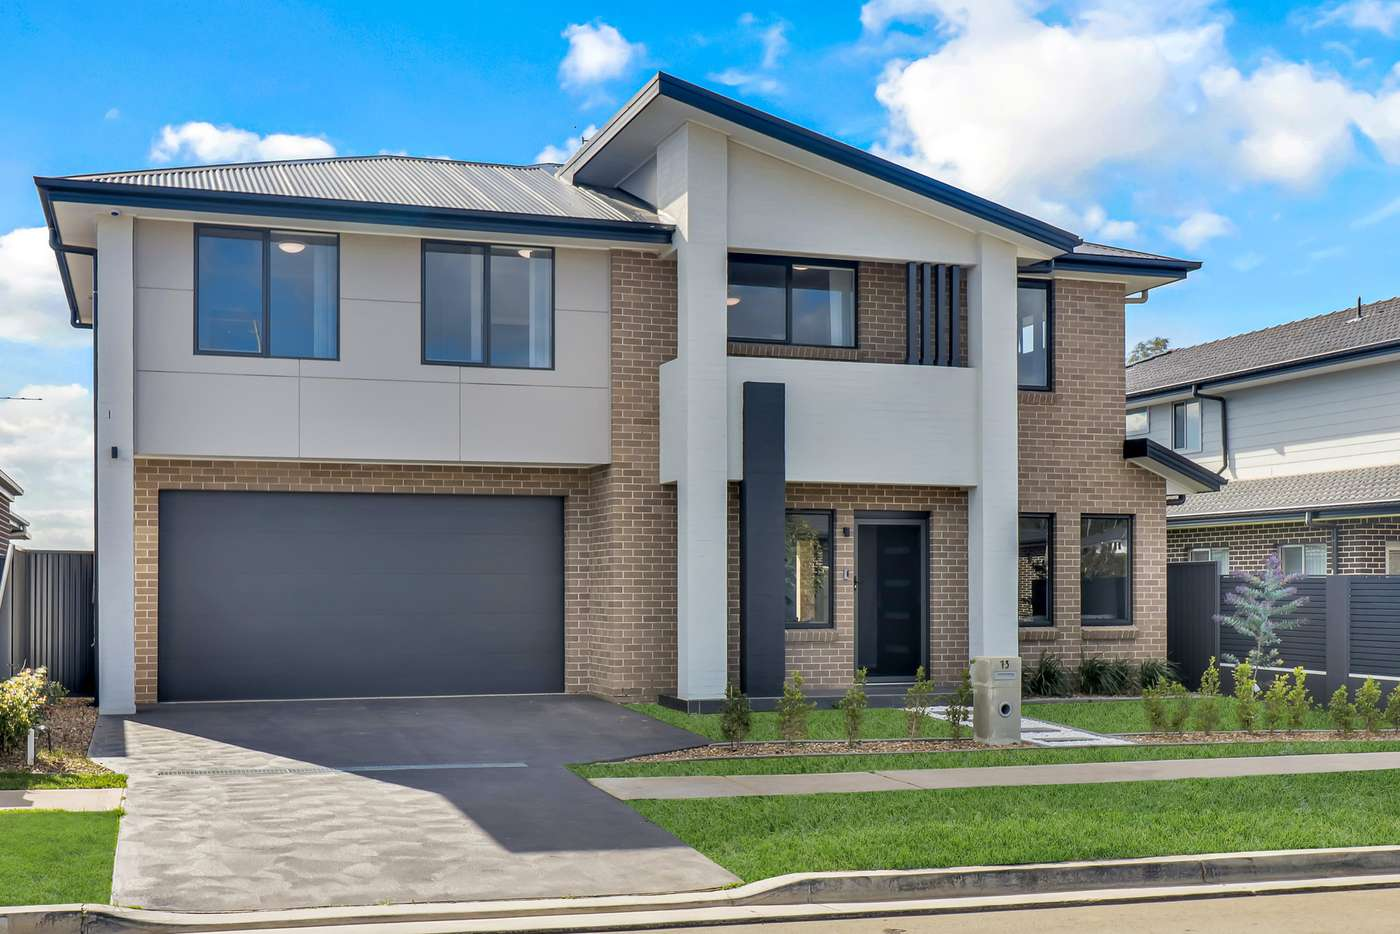 Main view of Homely house listing, 73 Fanflower Avenue, Leppington NSW 2179